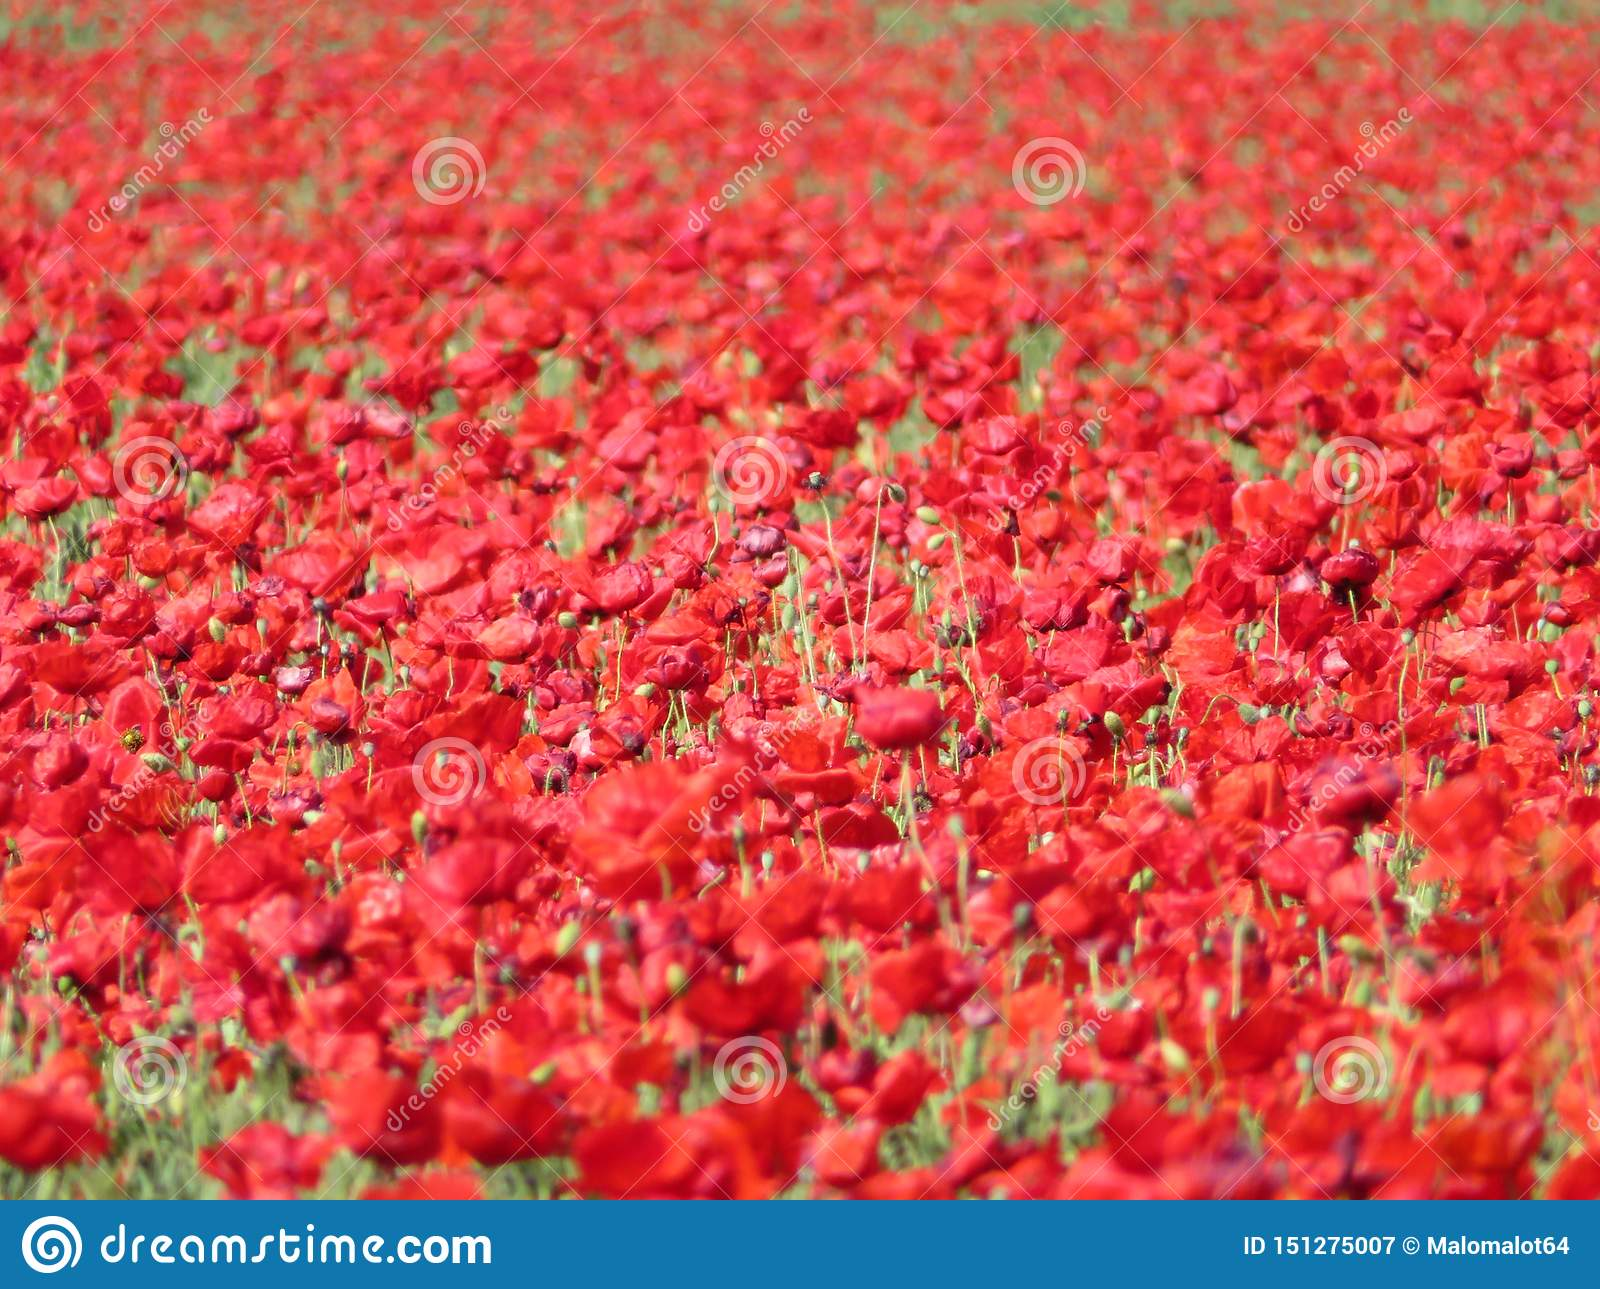 Beautiful red poppies full of flowers mixed with cereal